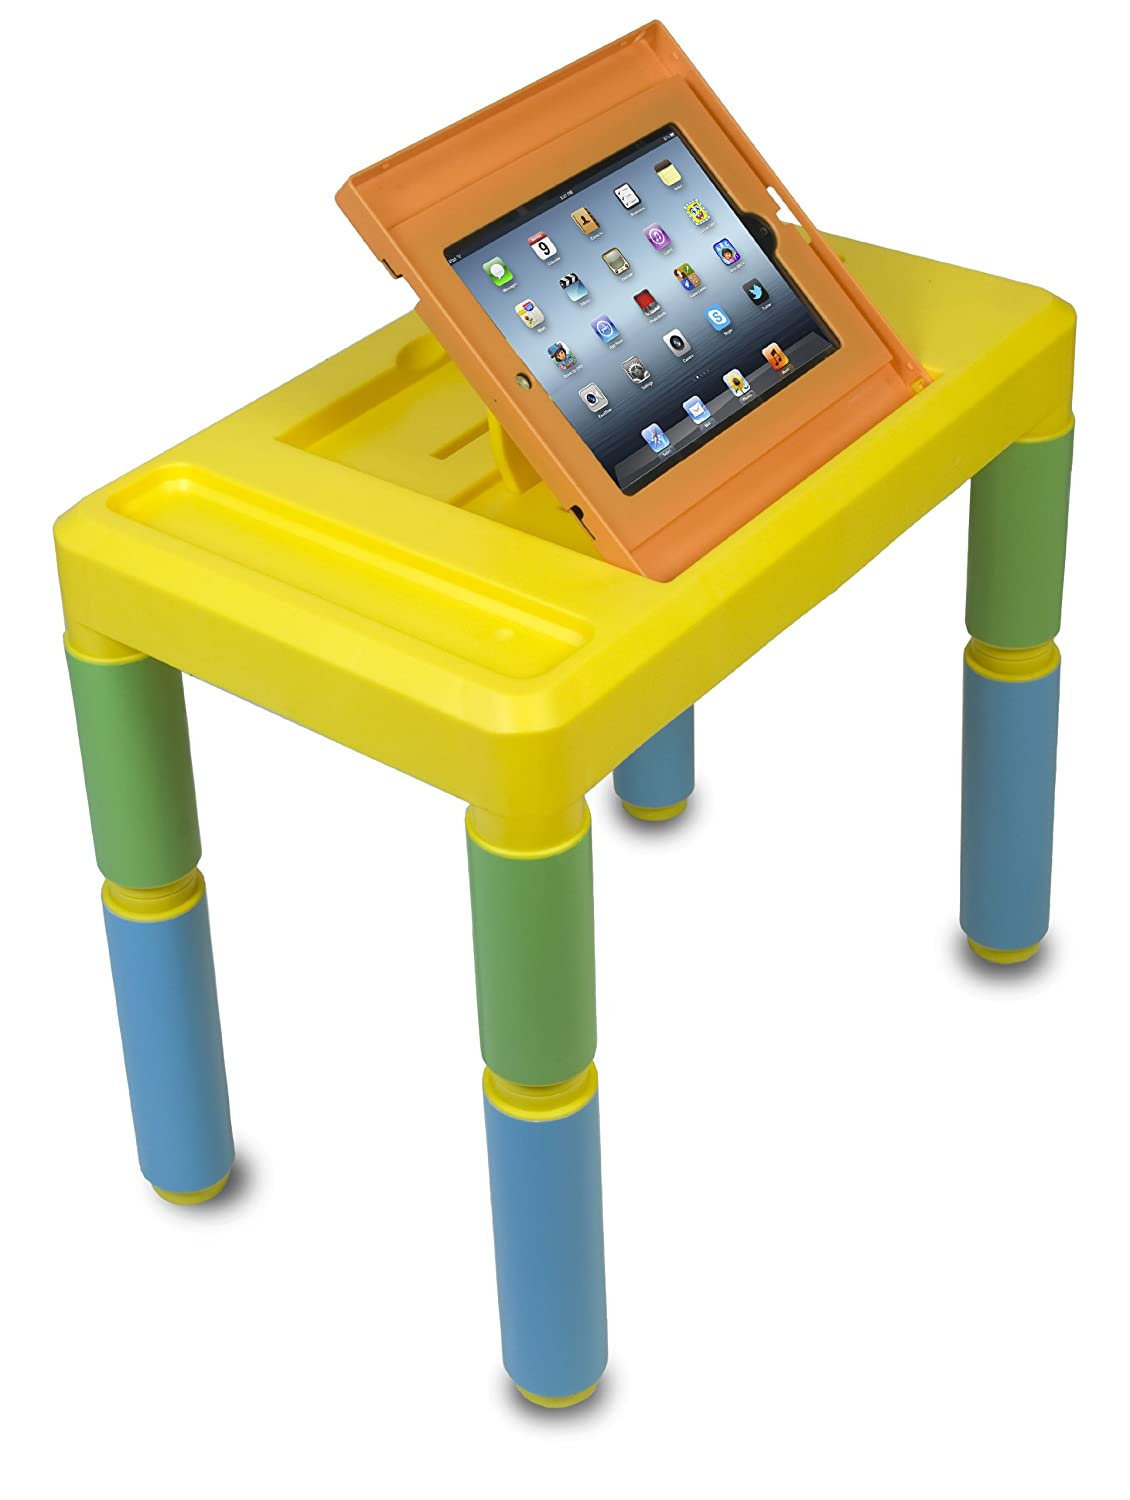 amazoncom cta digital kids adjustable activity table for ipad  - amazoncom cta digital kids adjustable activity table for ipad toys games